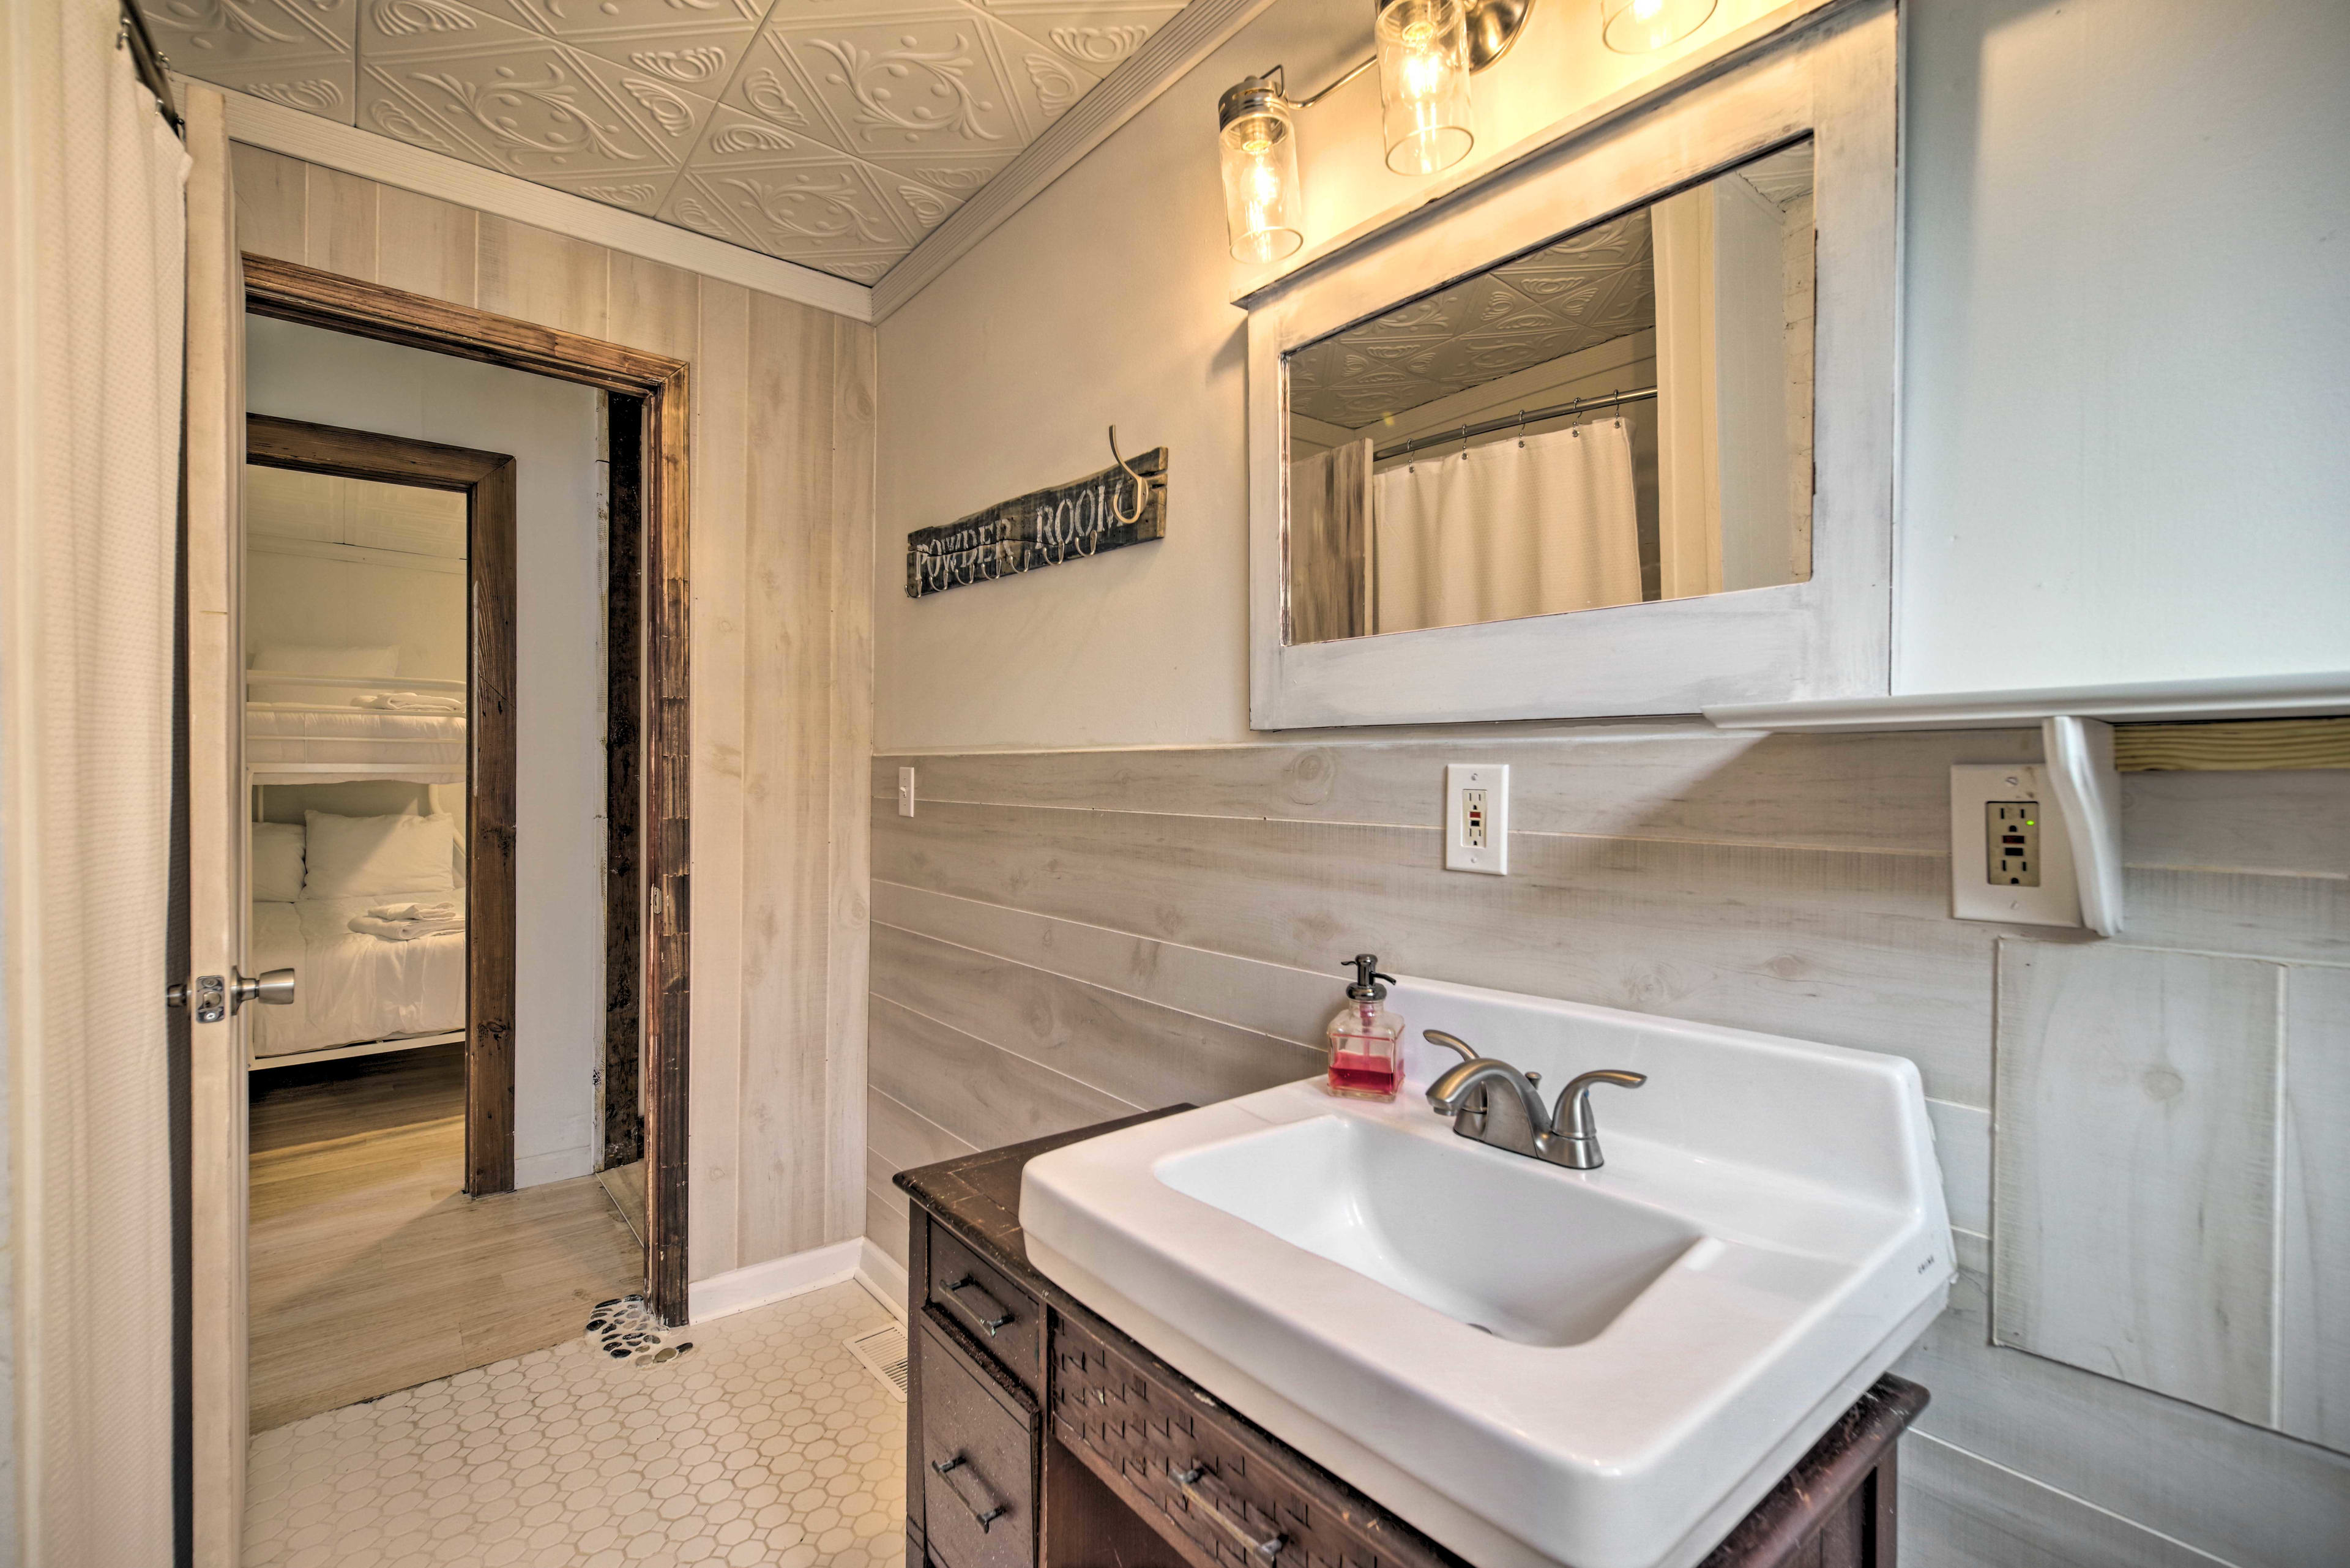 There is 1 full bathroom in this home.